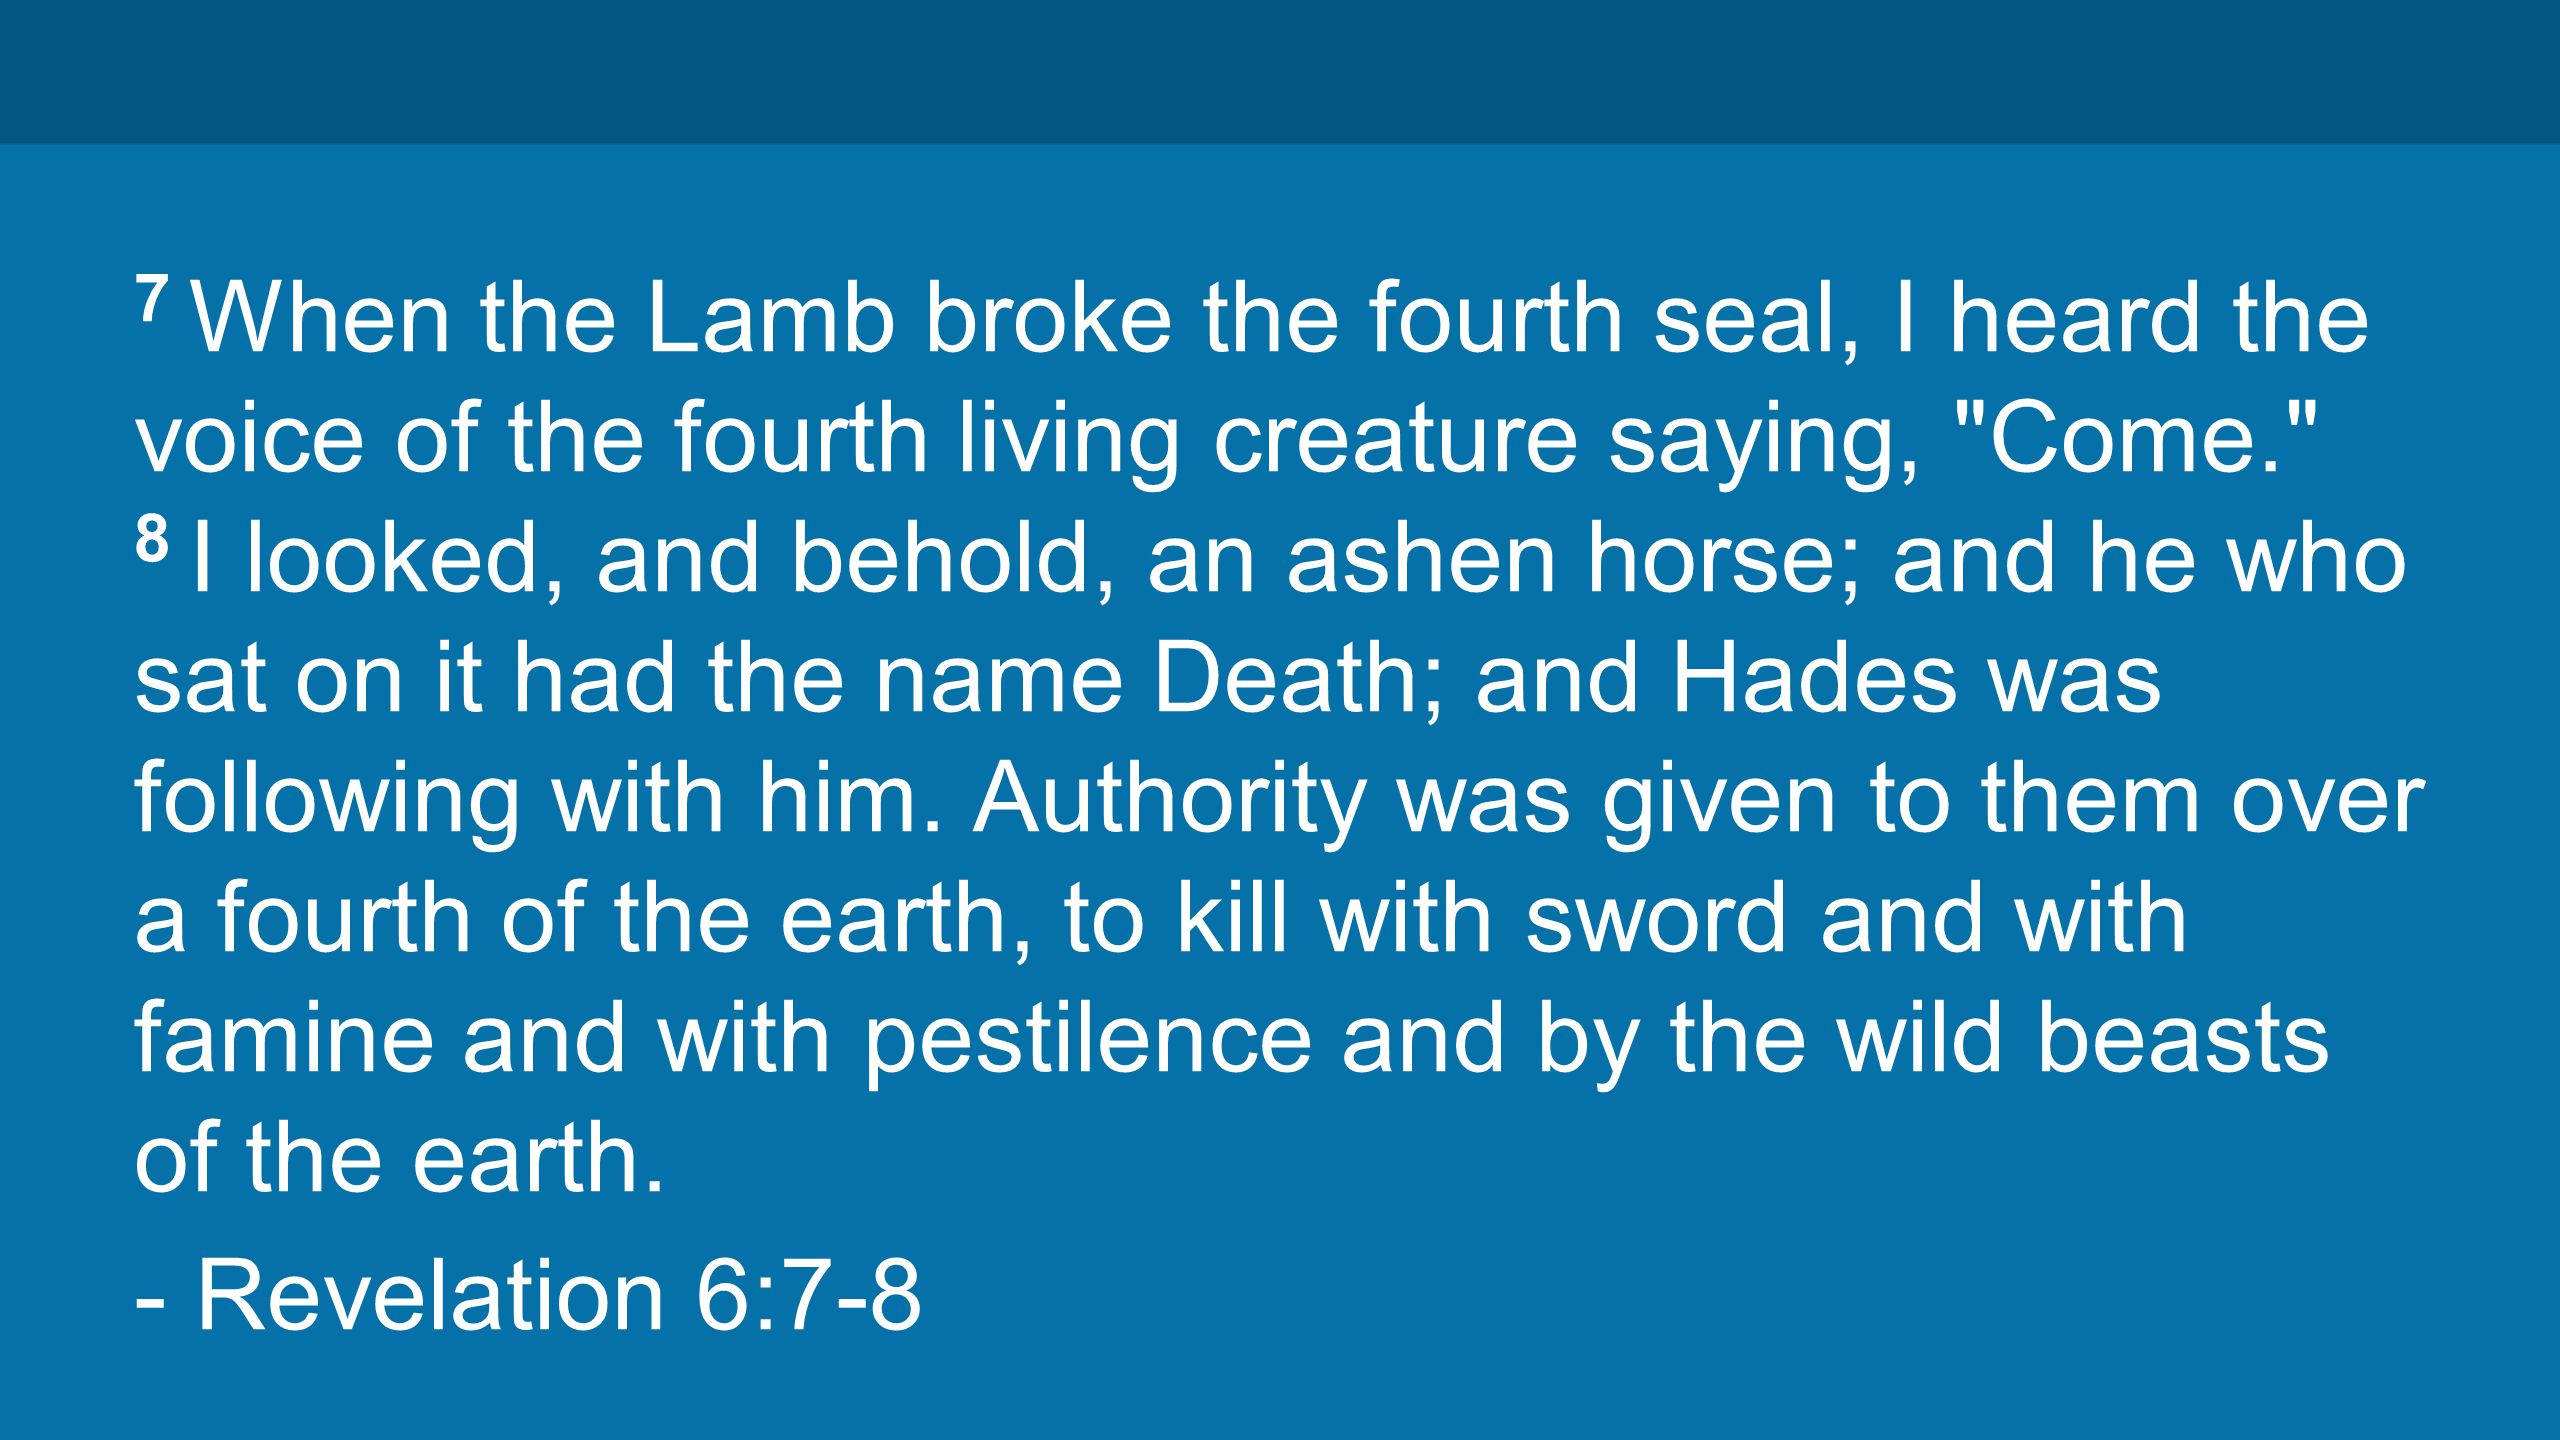 7 When the Lamb broke the fourth seal, I heard the voice of the fourth living creature saying, Come. 8 I looked, and behold, an ashen horse; and he who sat on it had the name Death; and Hades was following with him.